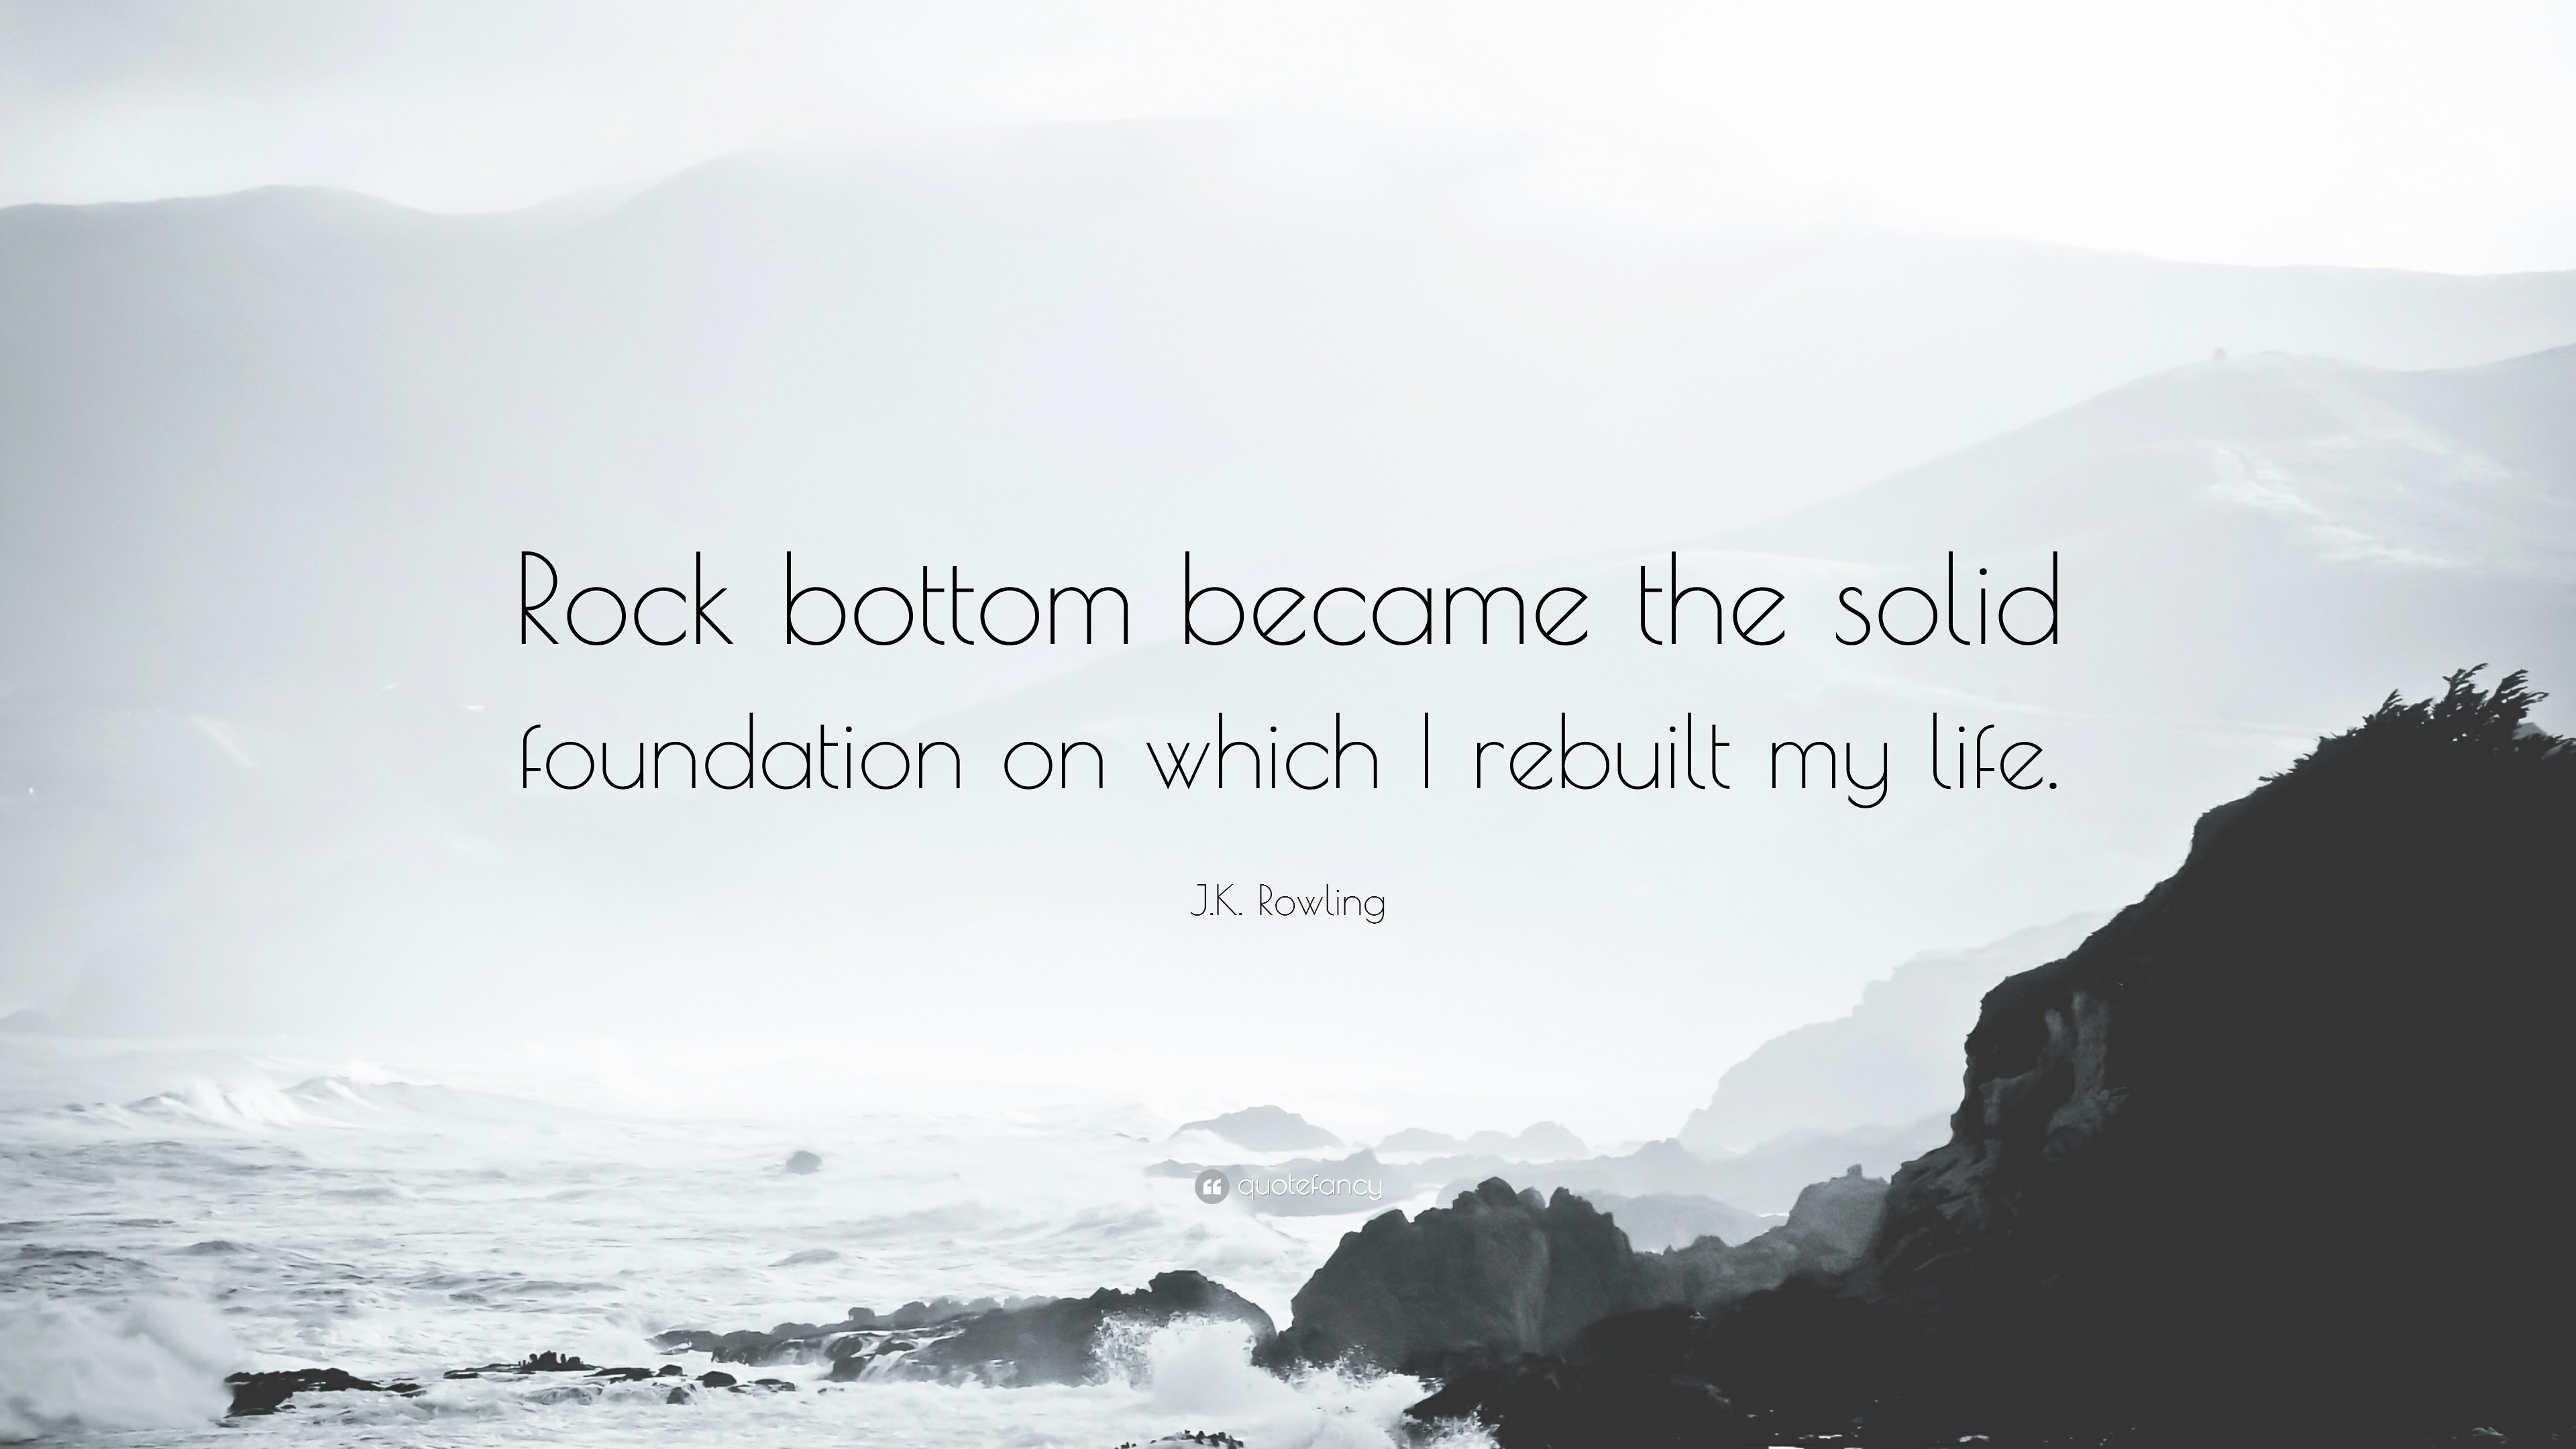 18553-J-K-Rowling-Quote-Rock-bottom-became-the-solid-foundation-on-which.jpg